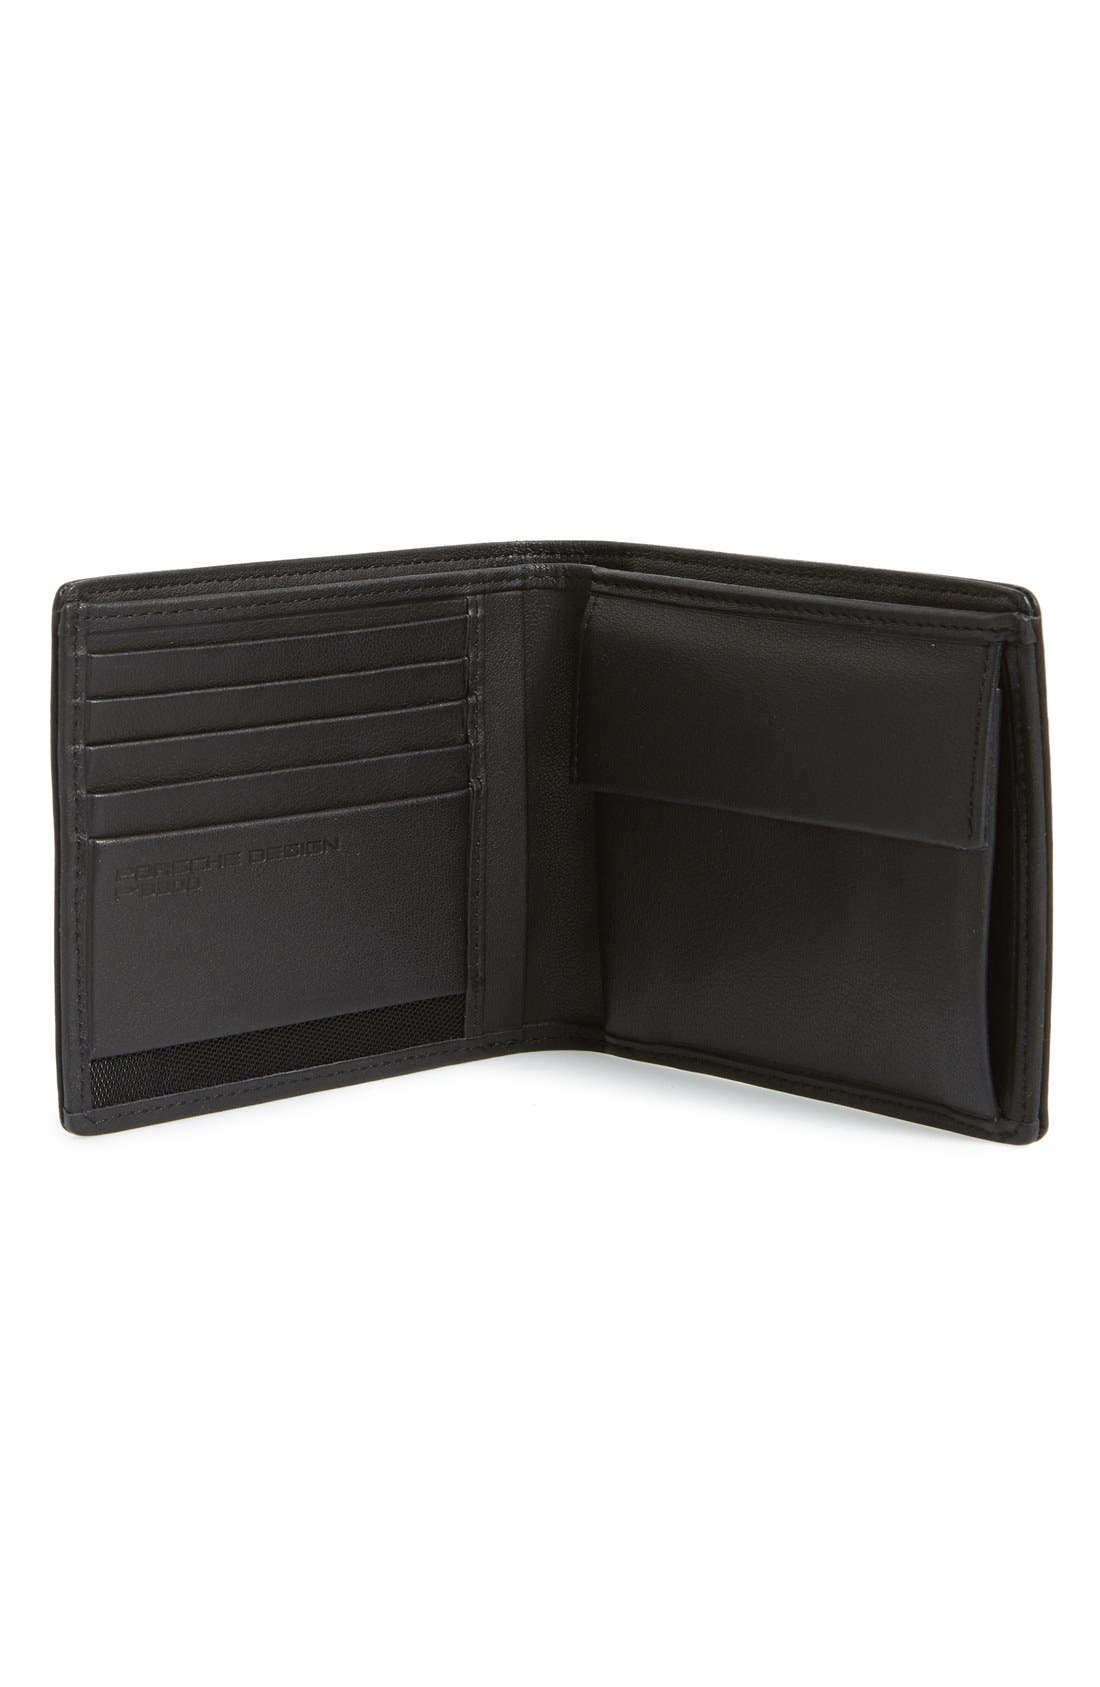 'CL2 2.0' Leather Billfold Wallet,                             Alternate thumbnail 2, color,                             001